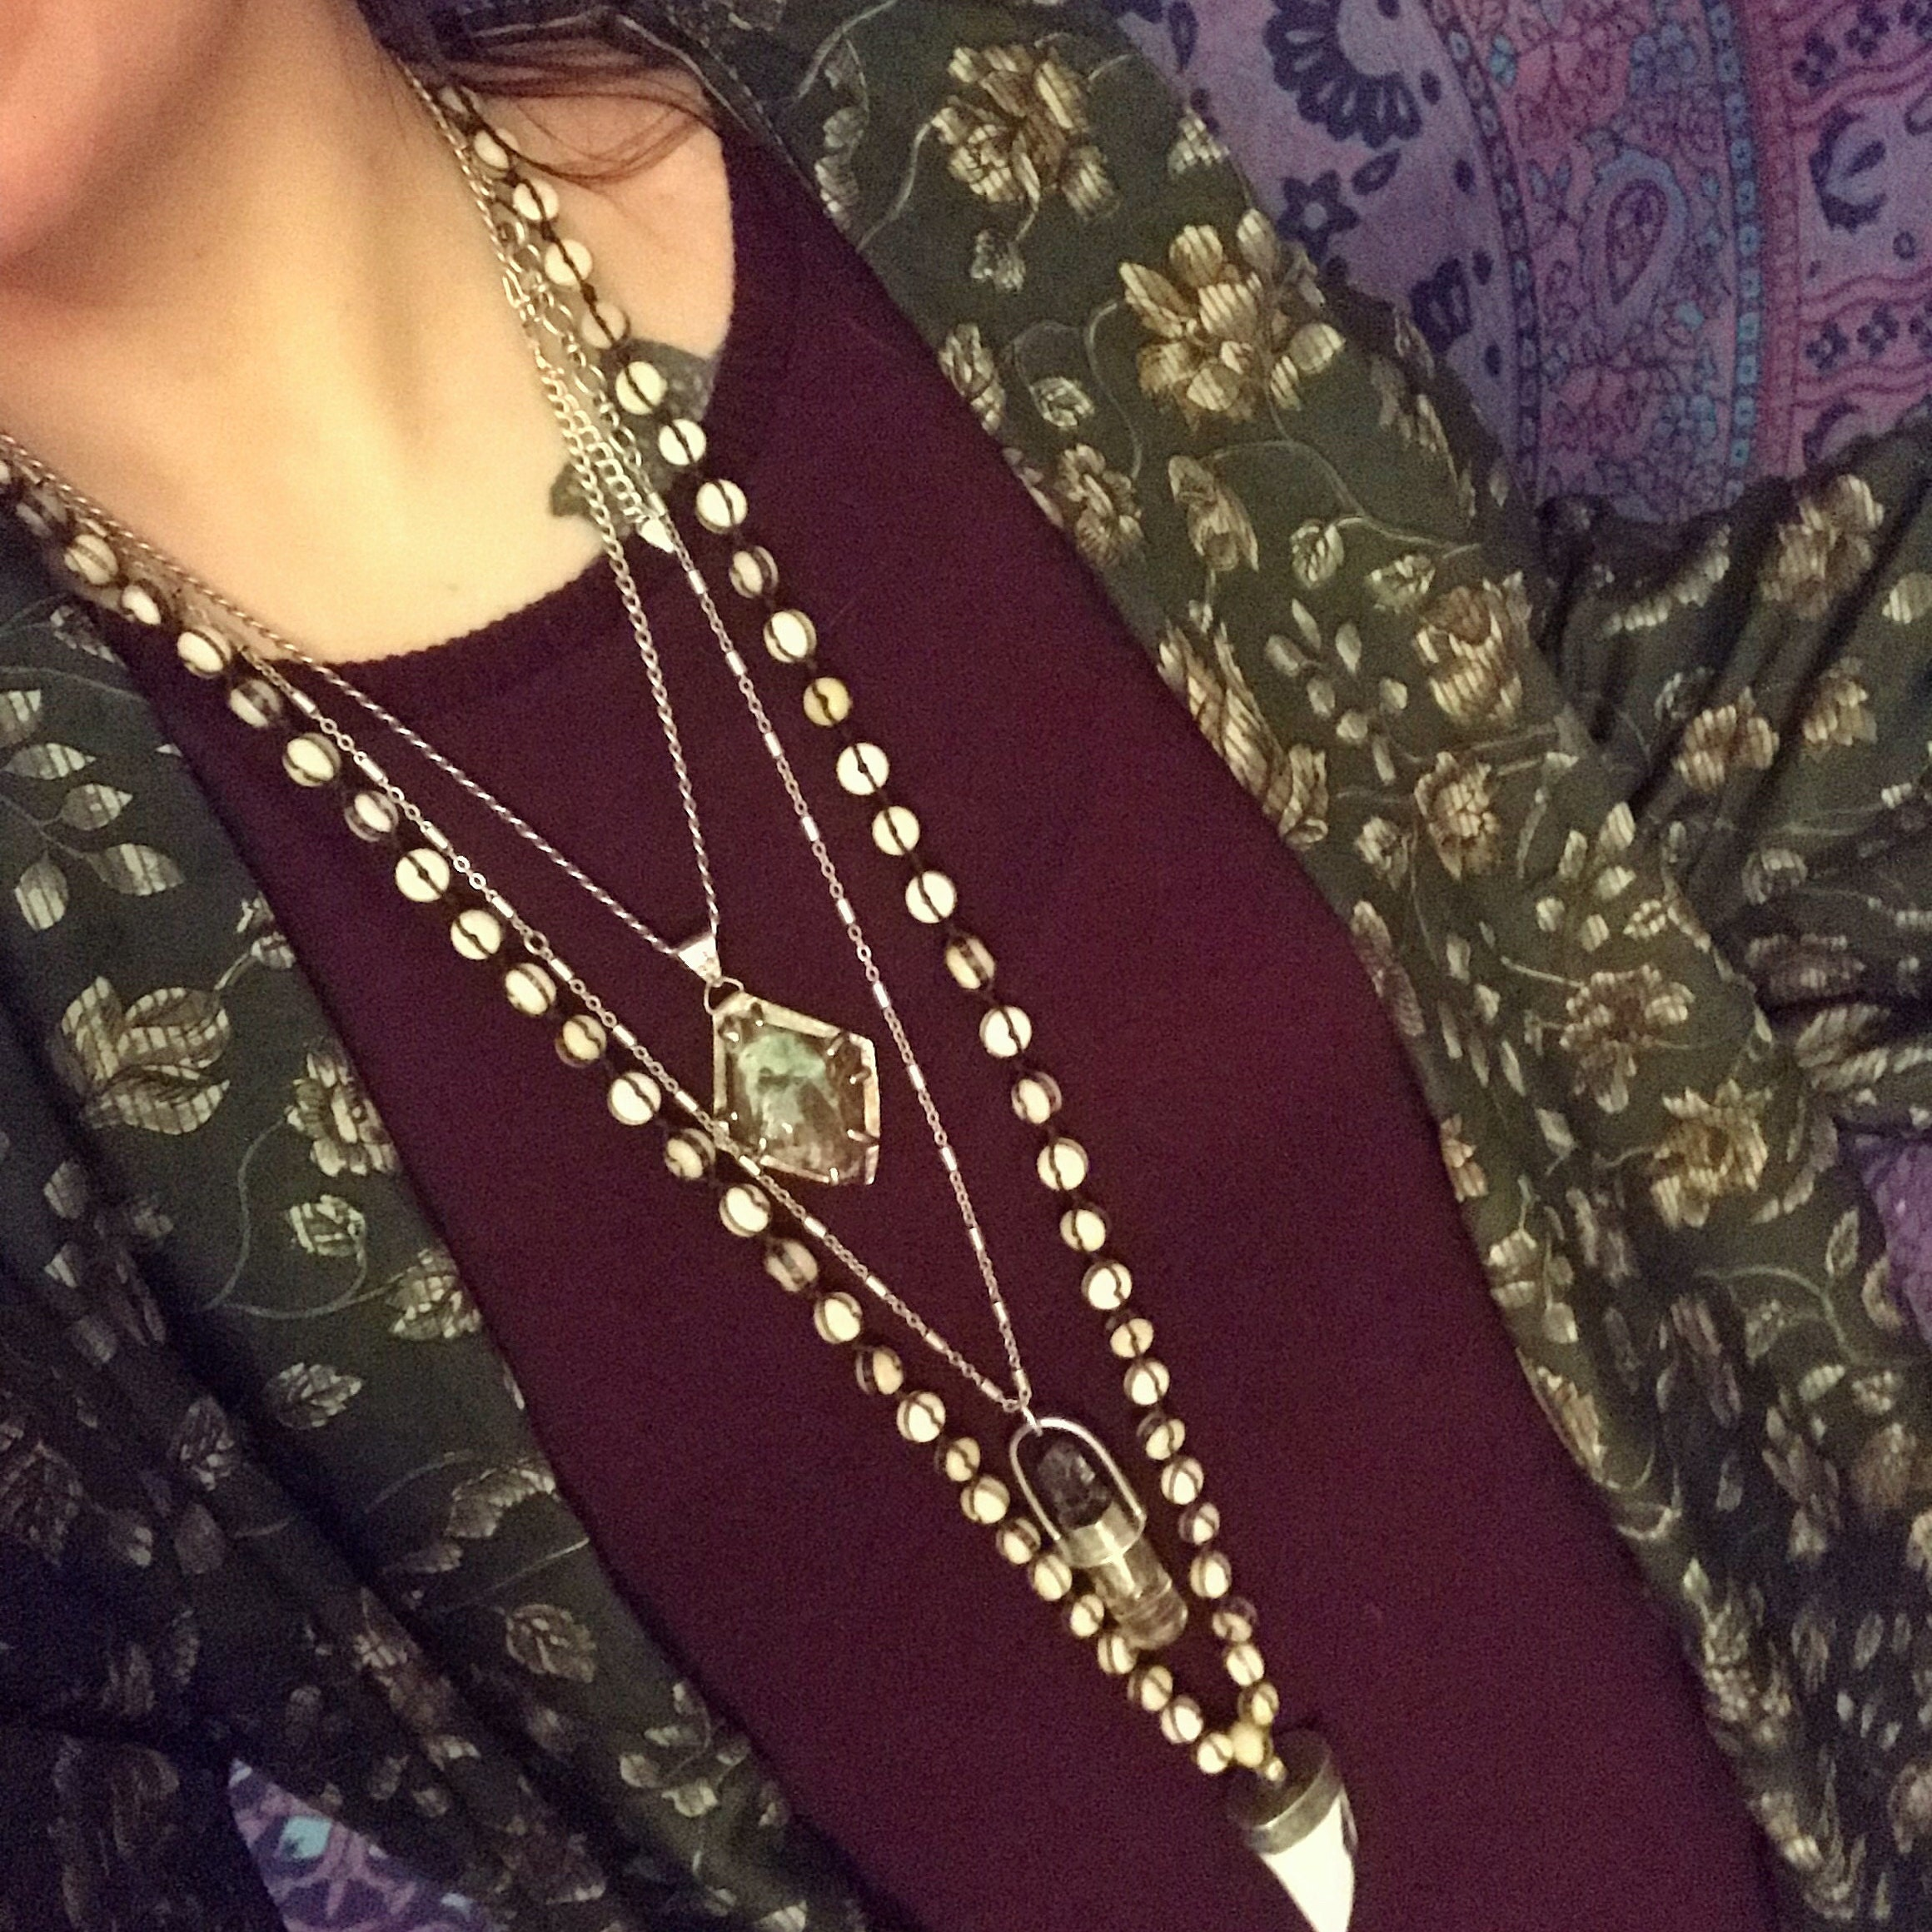 Kayleigh Trammell added a photo of their purchase